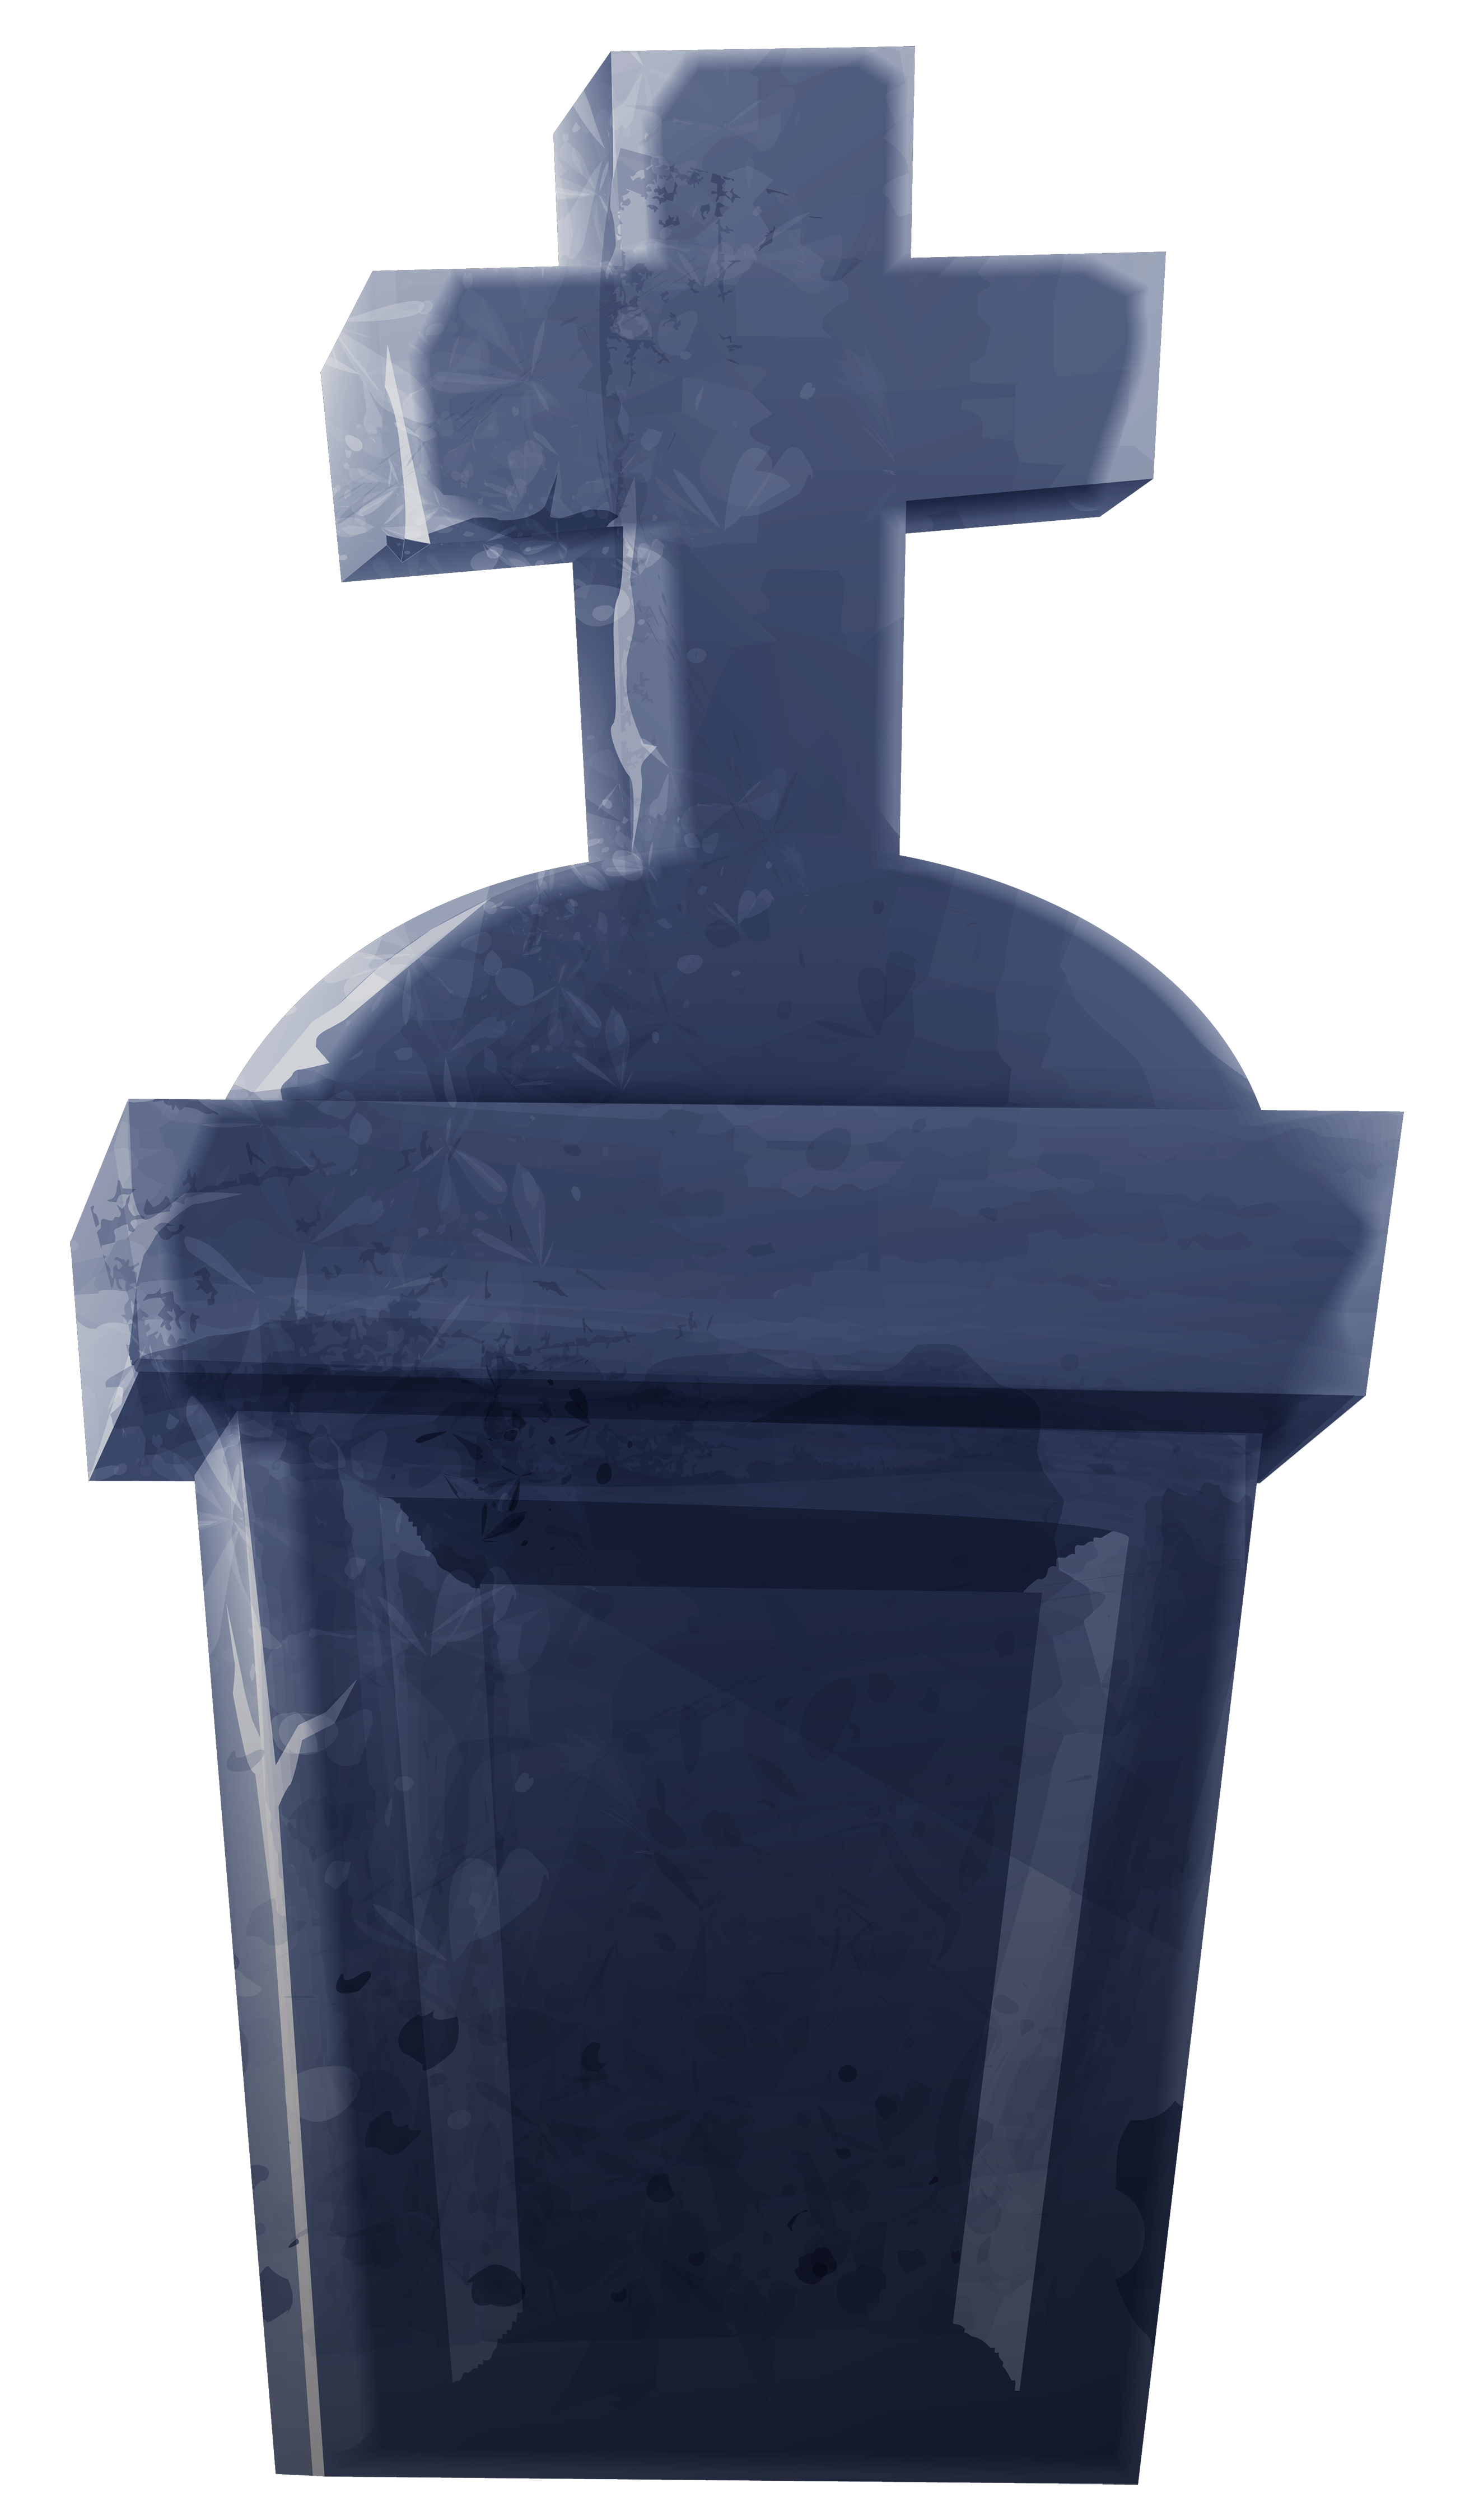 Tombstone clipart tombstone cross Clipart  View size Image